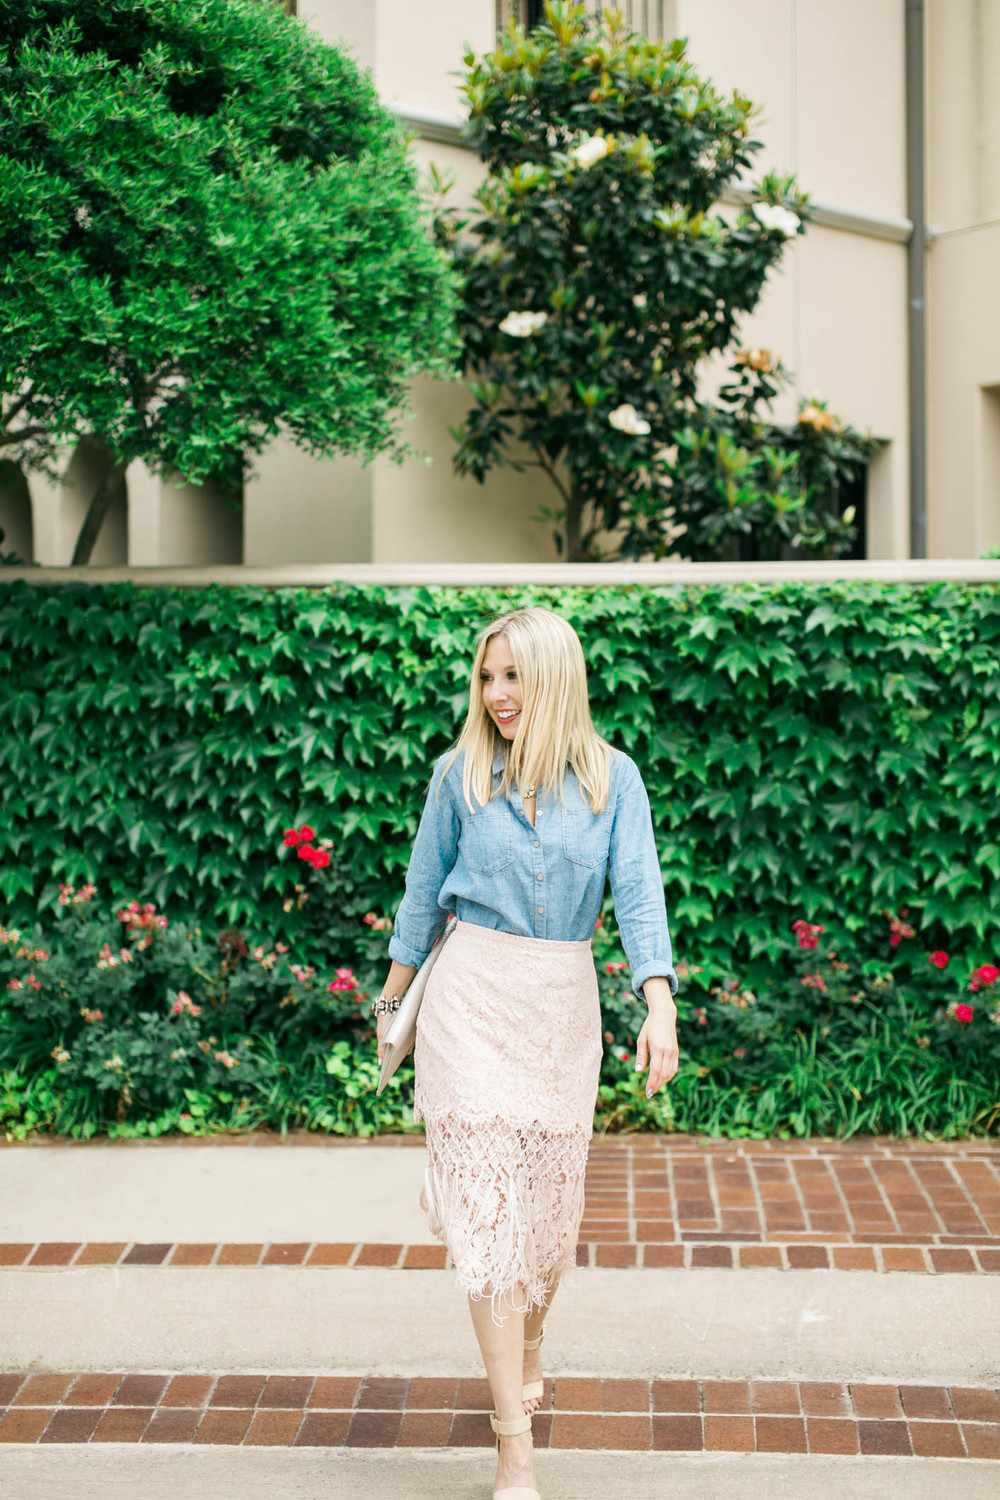 Lace Skirt + Chambray Outfit 3